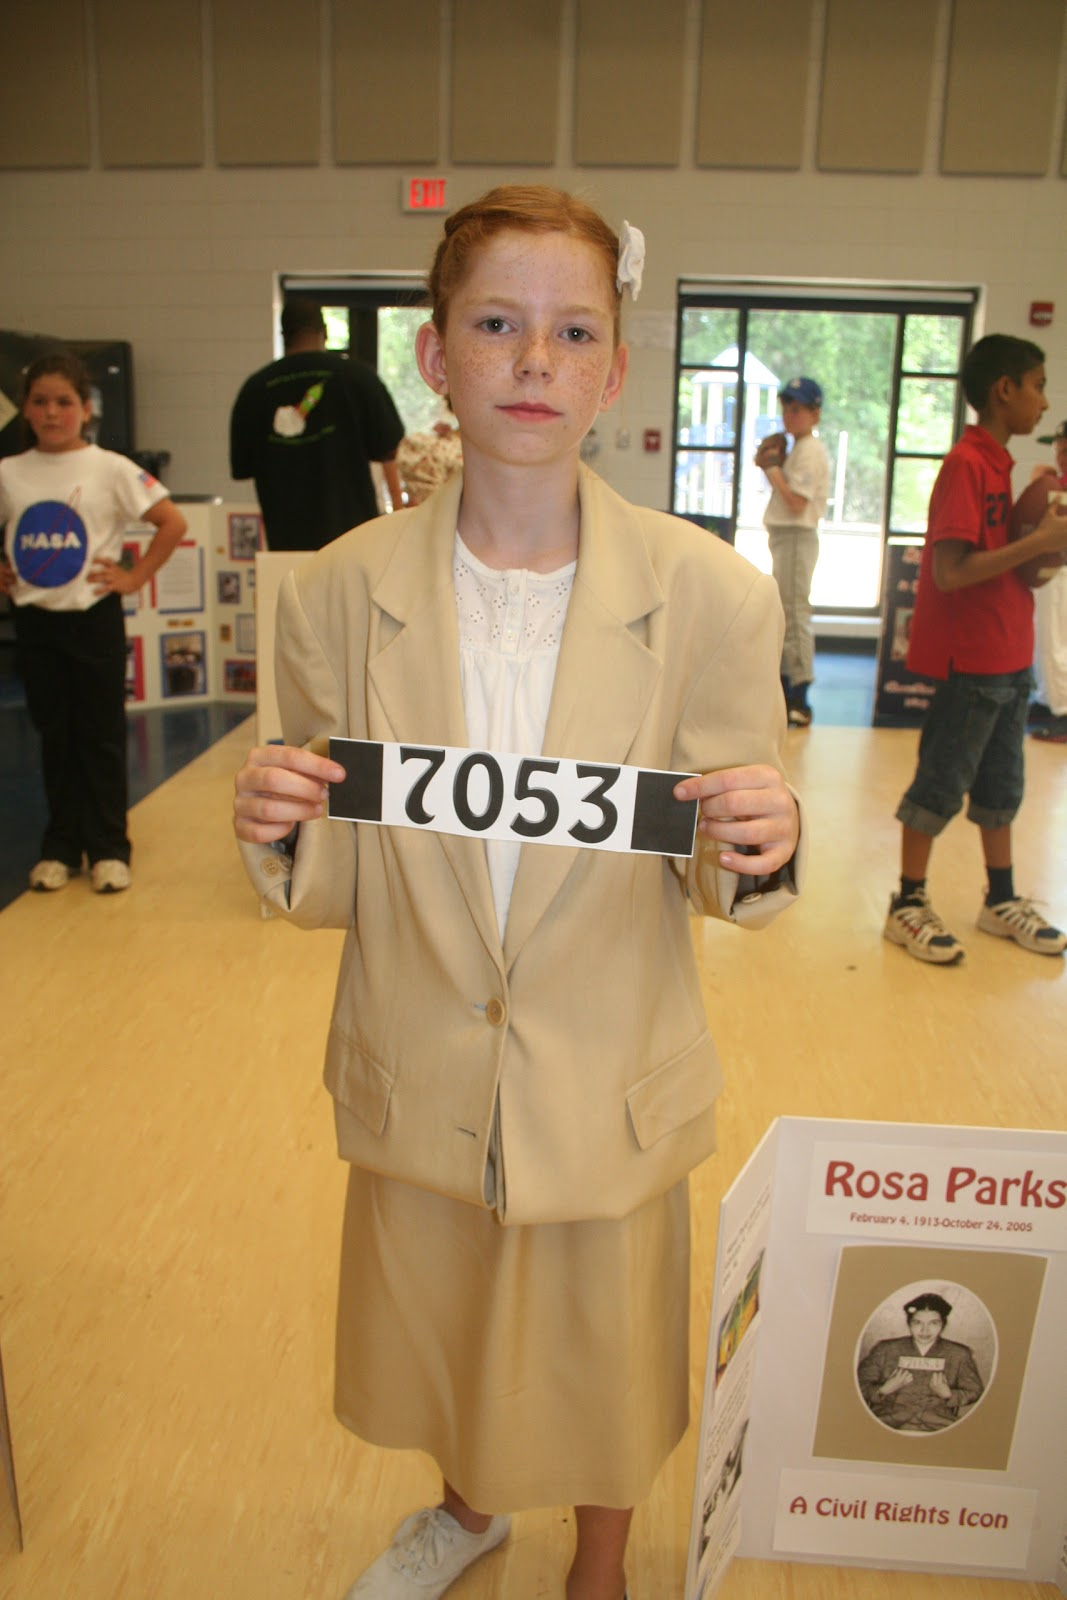 For A School Project I Had To Pick Famous Alabamian Dress Up Aemorize Sch About The Person Picked Rosa Parks Because Knew She Would Be